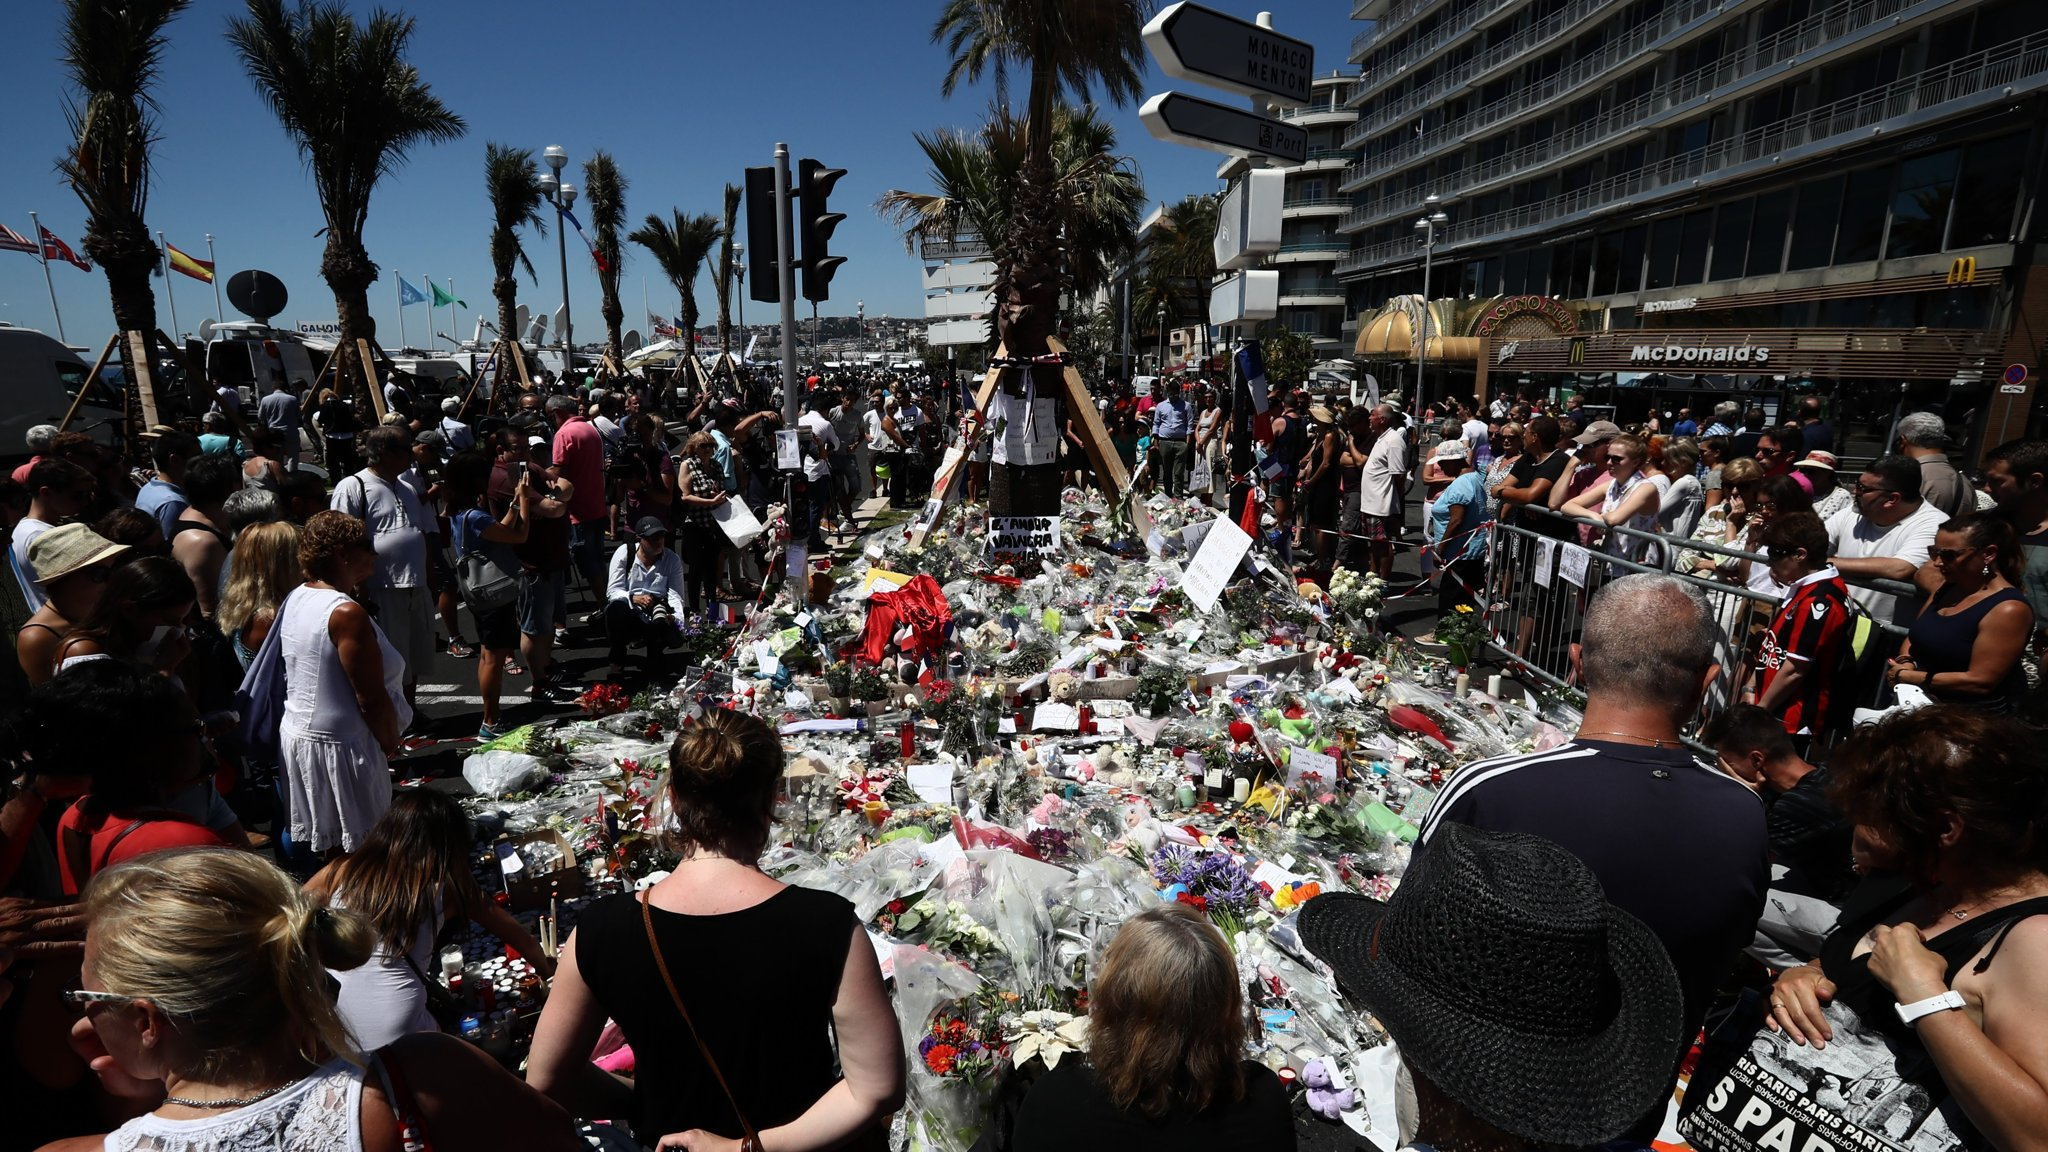 Isis claims responsibility for attack in Nice | Financial Times